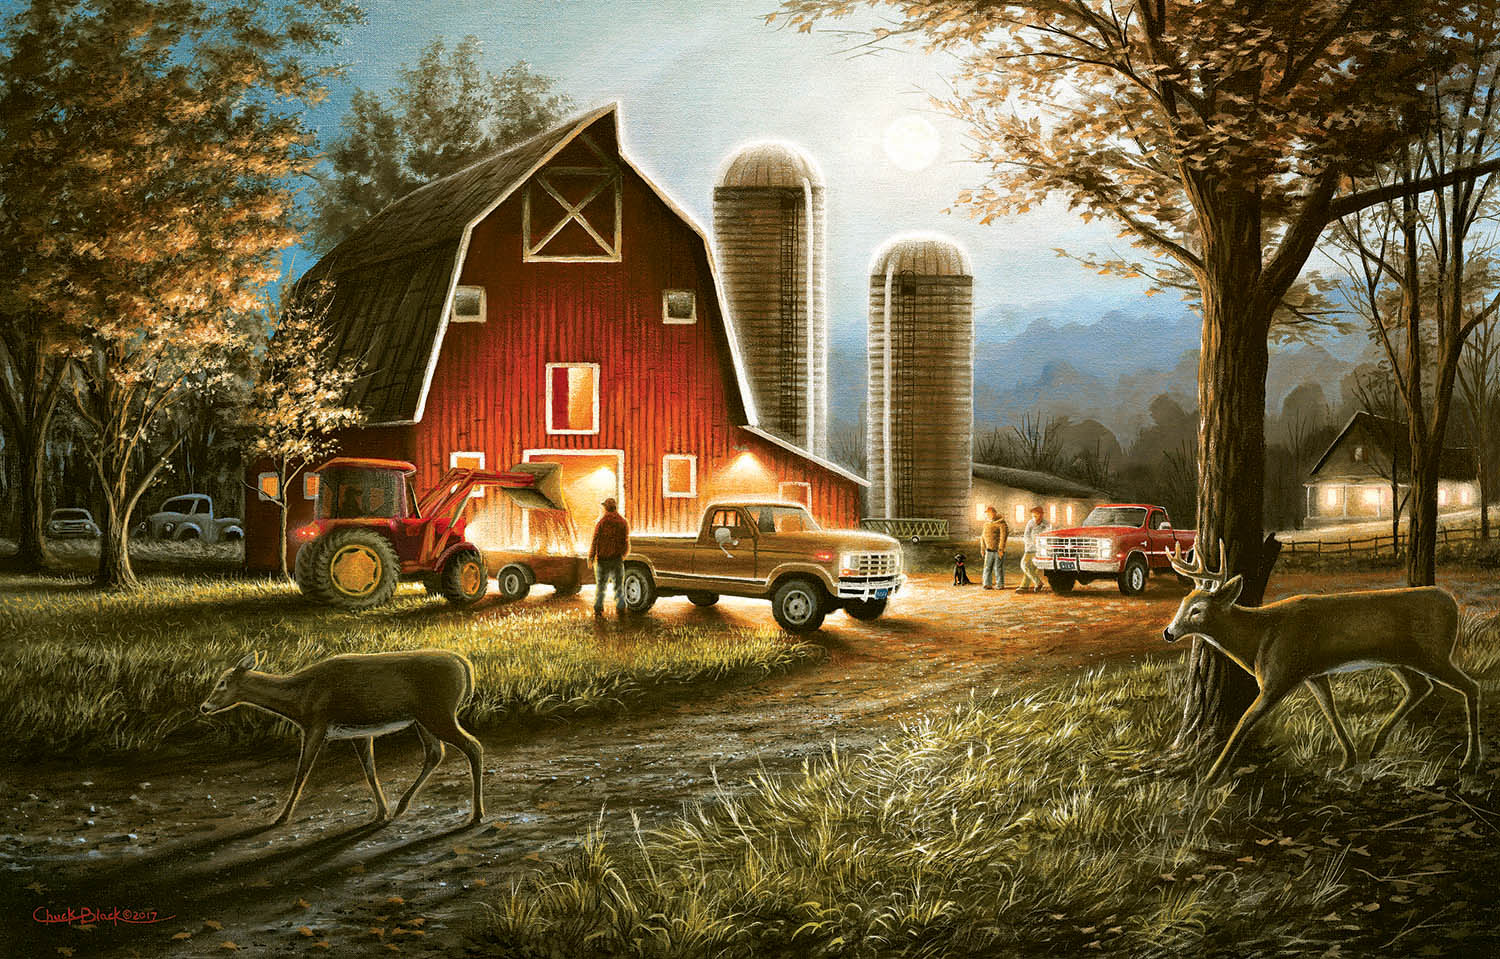 sunsout-chuck-black-harvest-nights-550-teile-puzzle-sunsout-55193